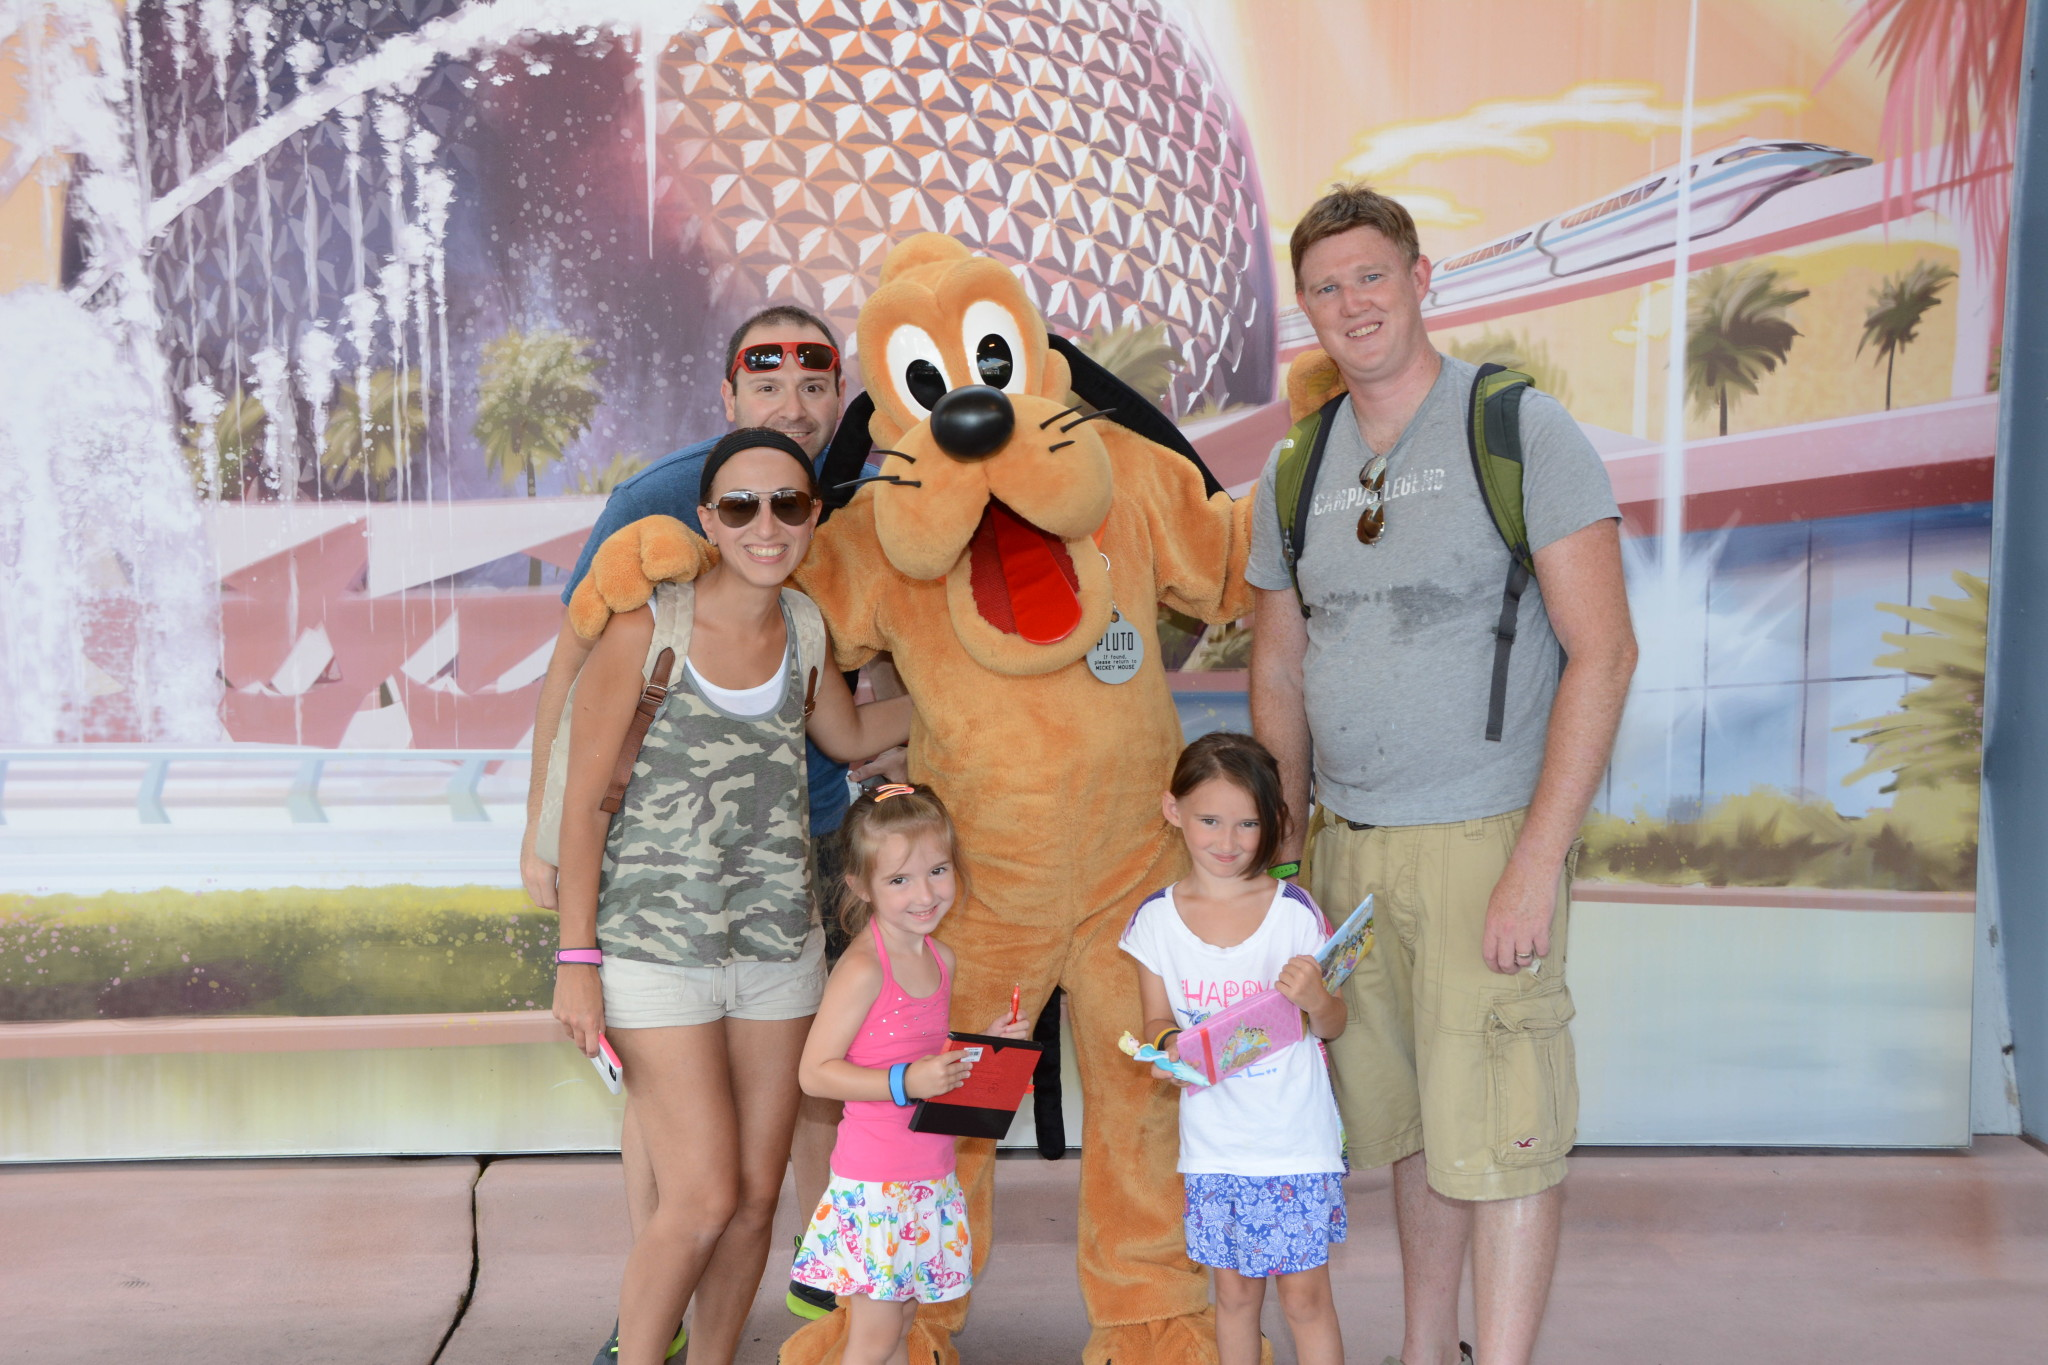 Our First Day at Epcot with Pluto